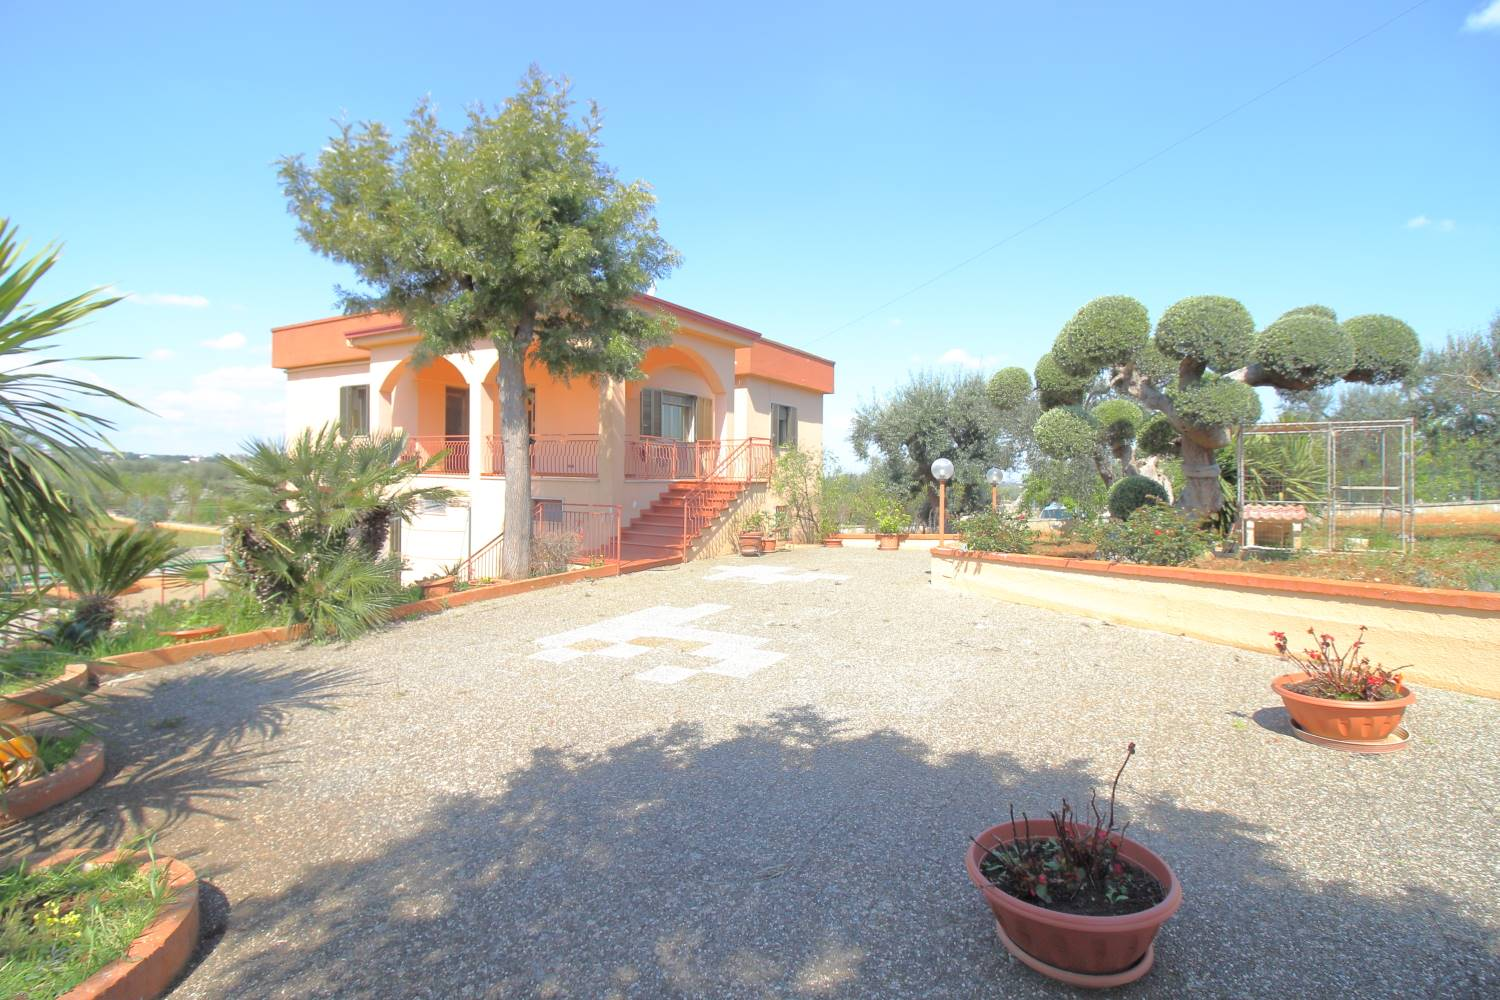 CASTELLANA GROTTE, Villa for sale of 220 Sq. mt., Good condition, Heating Individual heating system, Energetic class: G, Epi: 165 kwh/m2 year, placed at Raised, composed by: 5 Rooms, Separate kitchen,